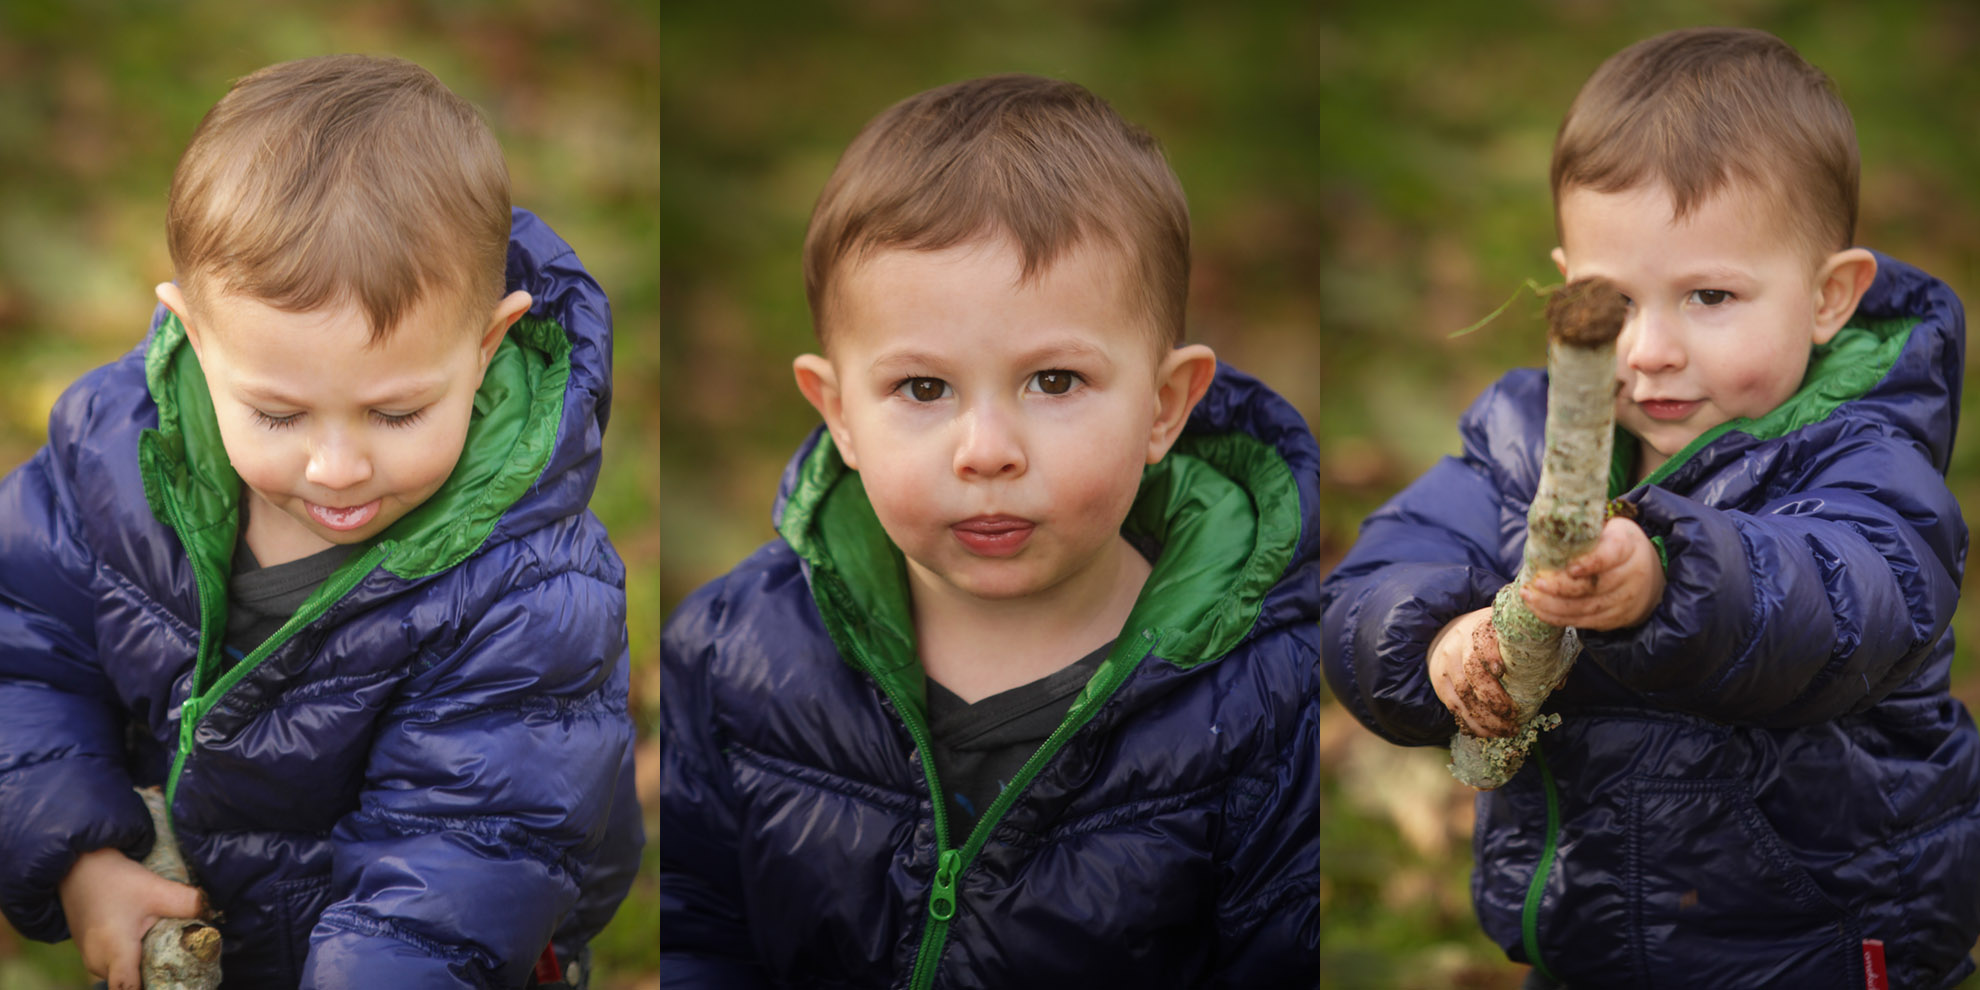 Hamilton-photography-outdoor-play-session-with-toddler.jpg